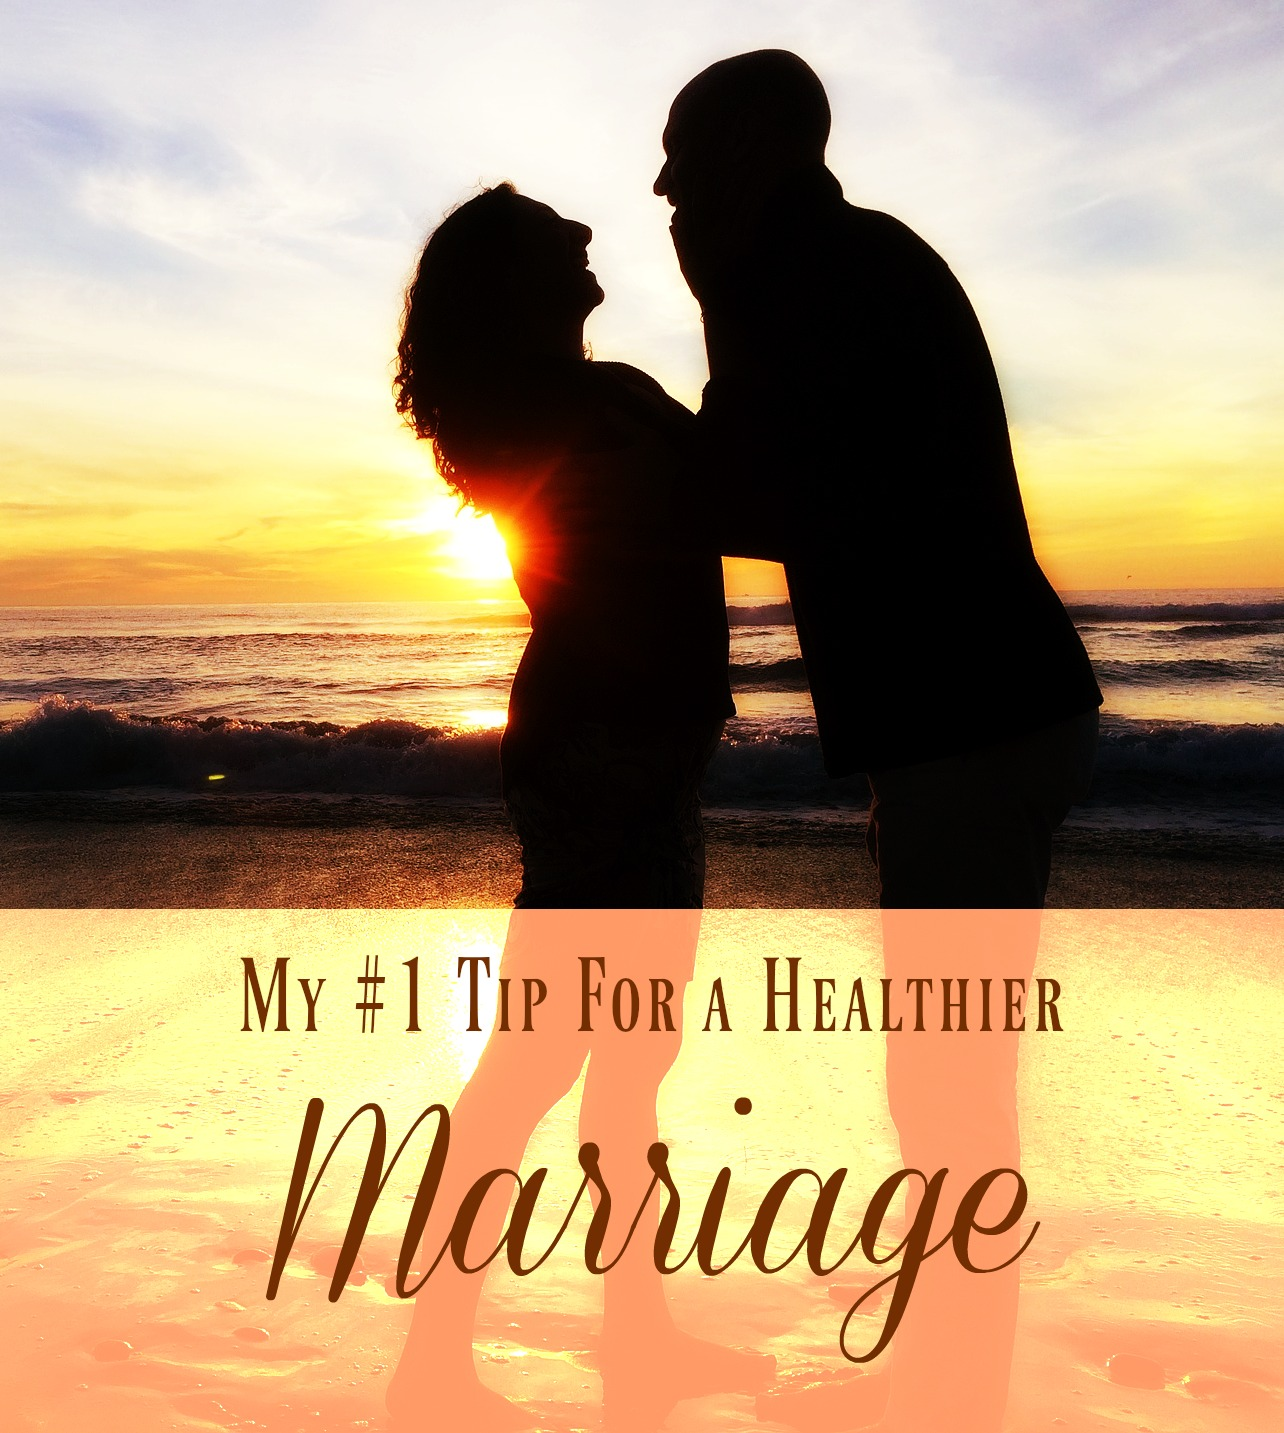 My 1 Tip For a Healthier Marriage